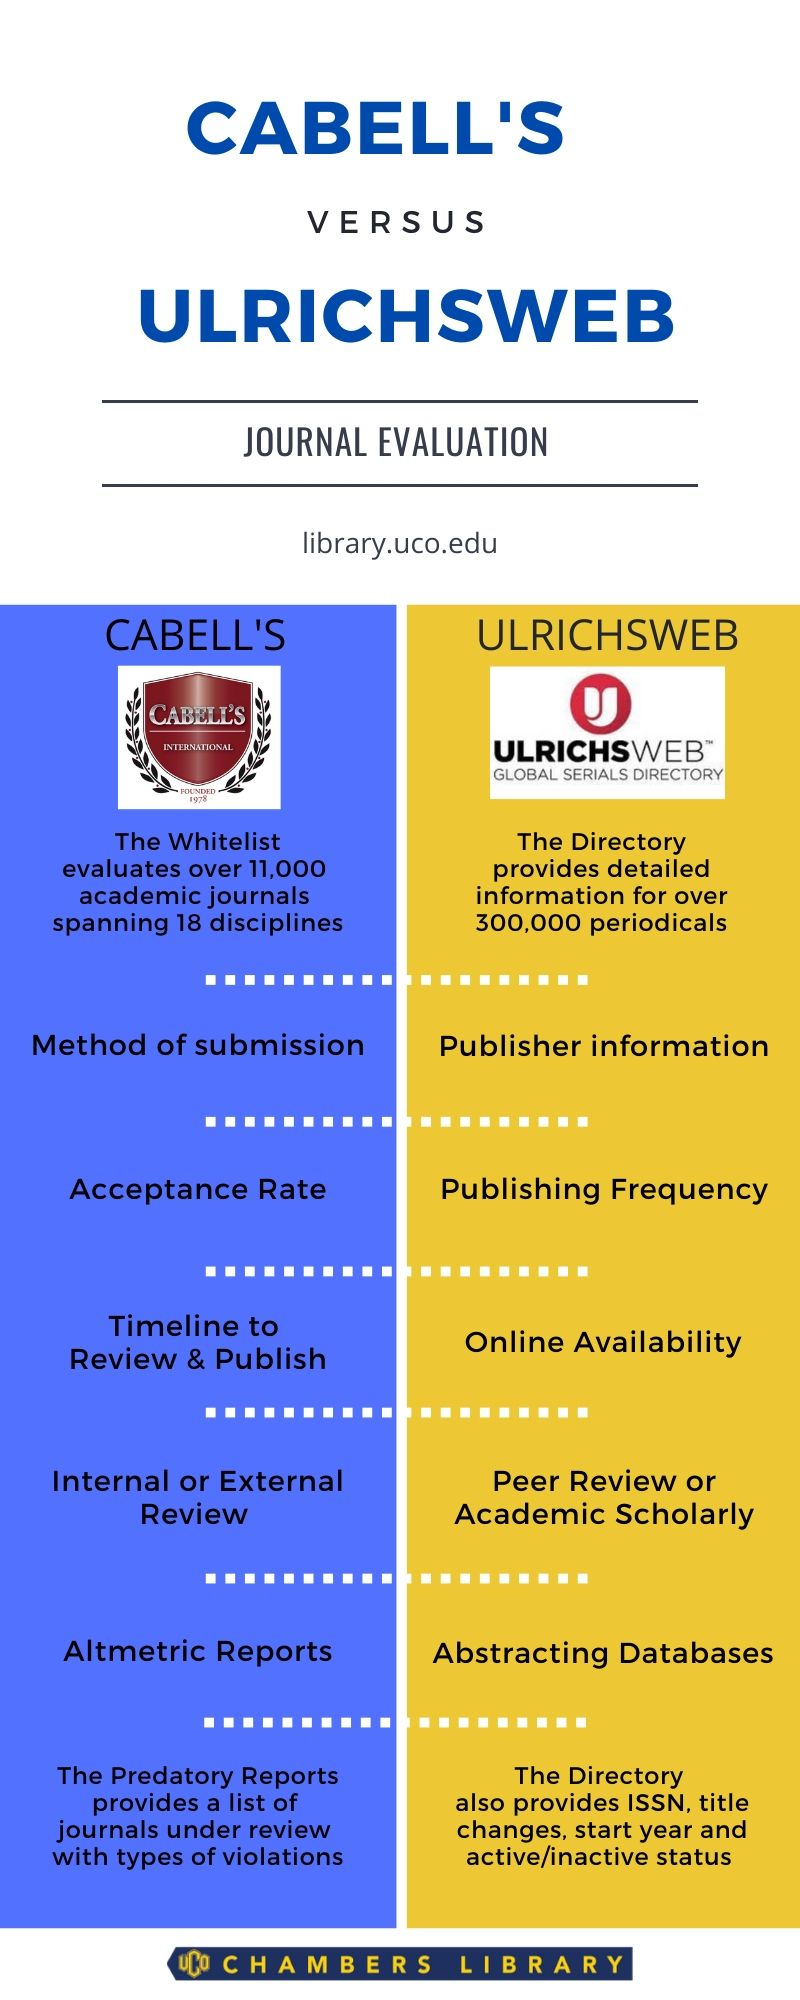 cabells and ulrichsweb info graphic